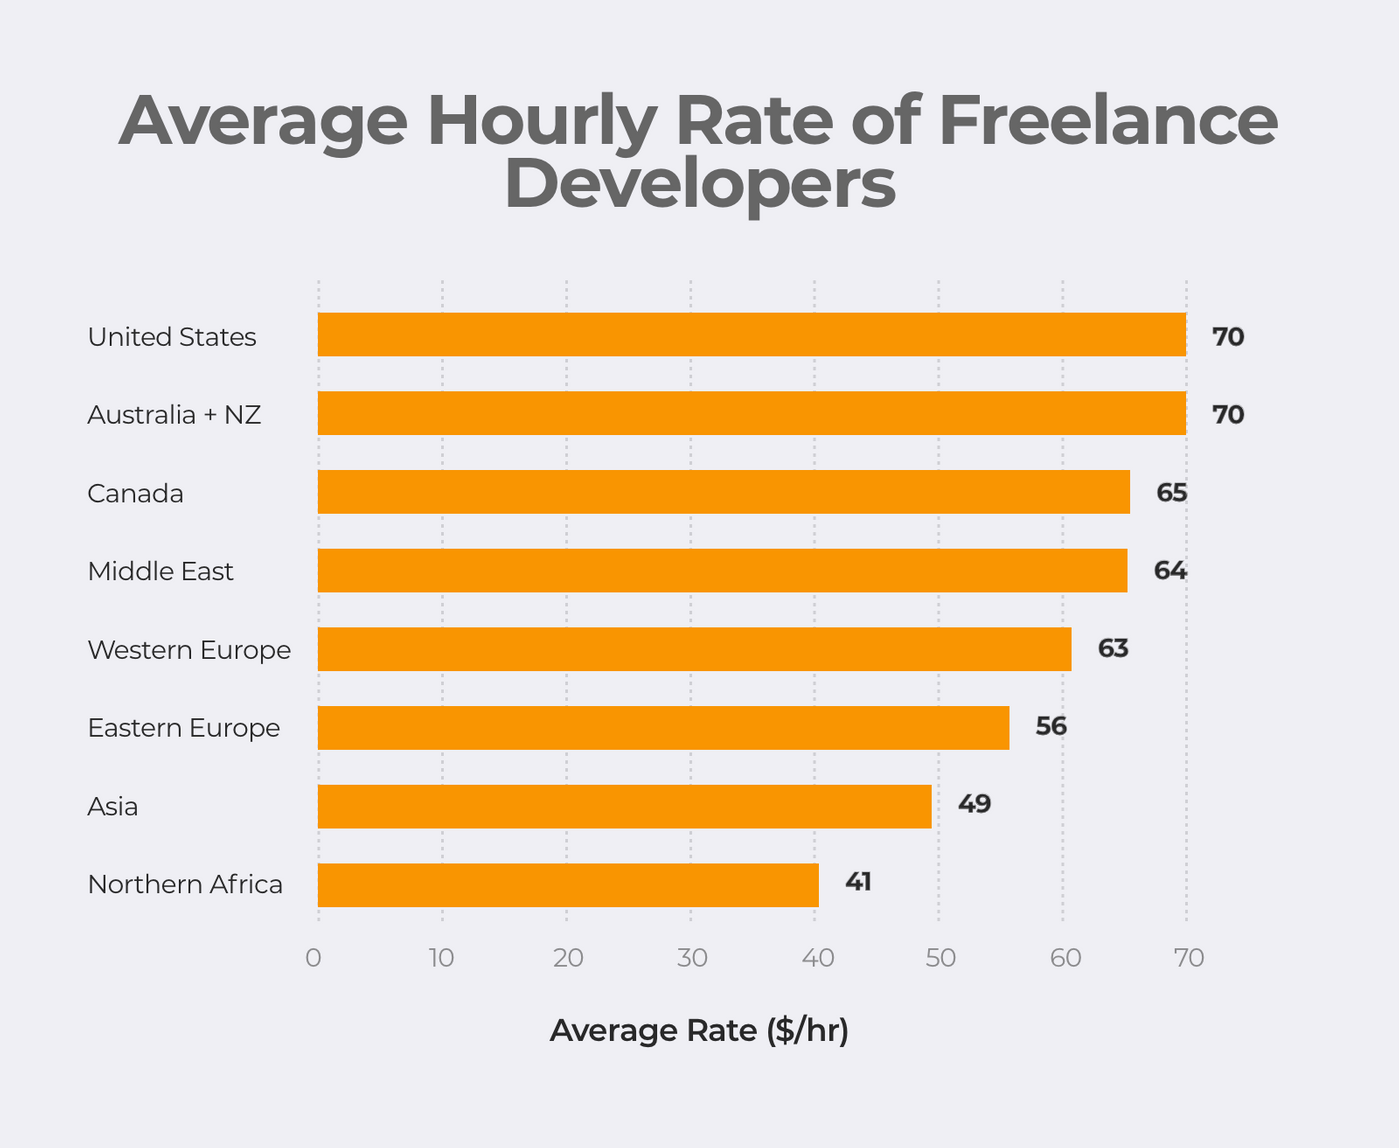 Average hourly rate of freelance developers